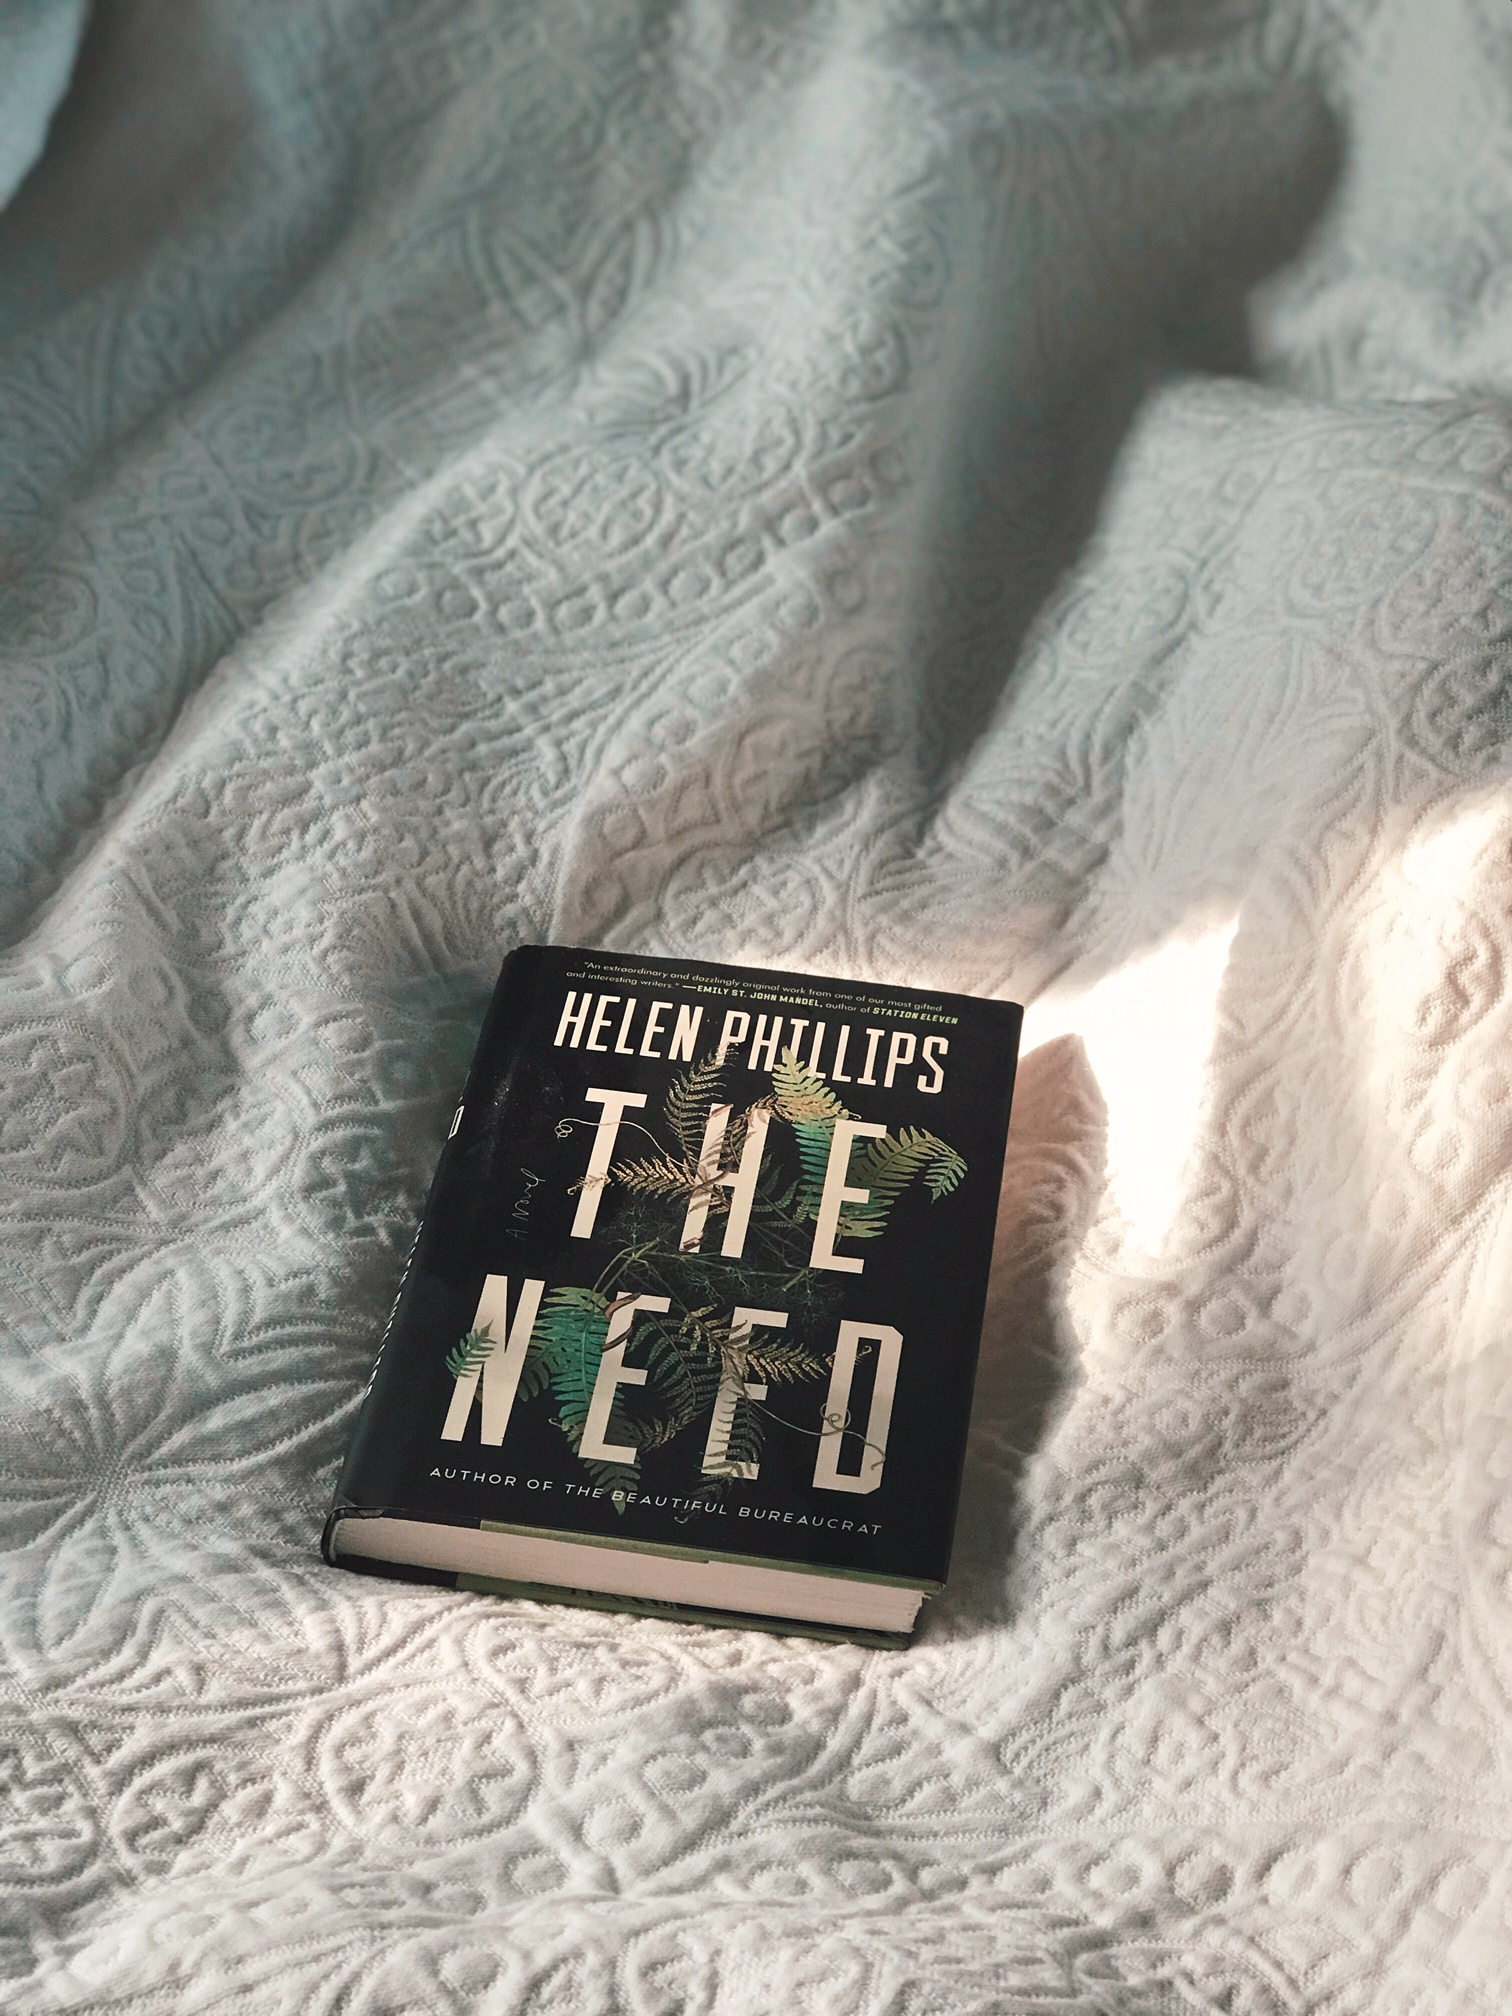 The Need  by Helen Phillips. Photo by Write or Die Tribe